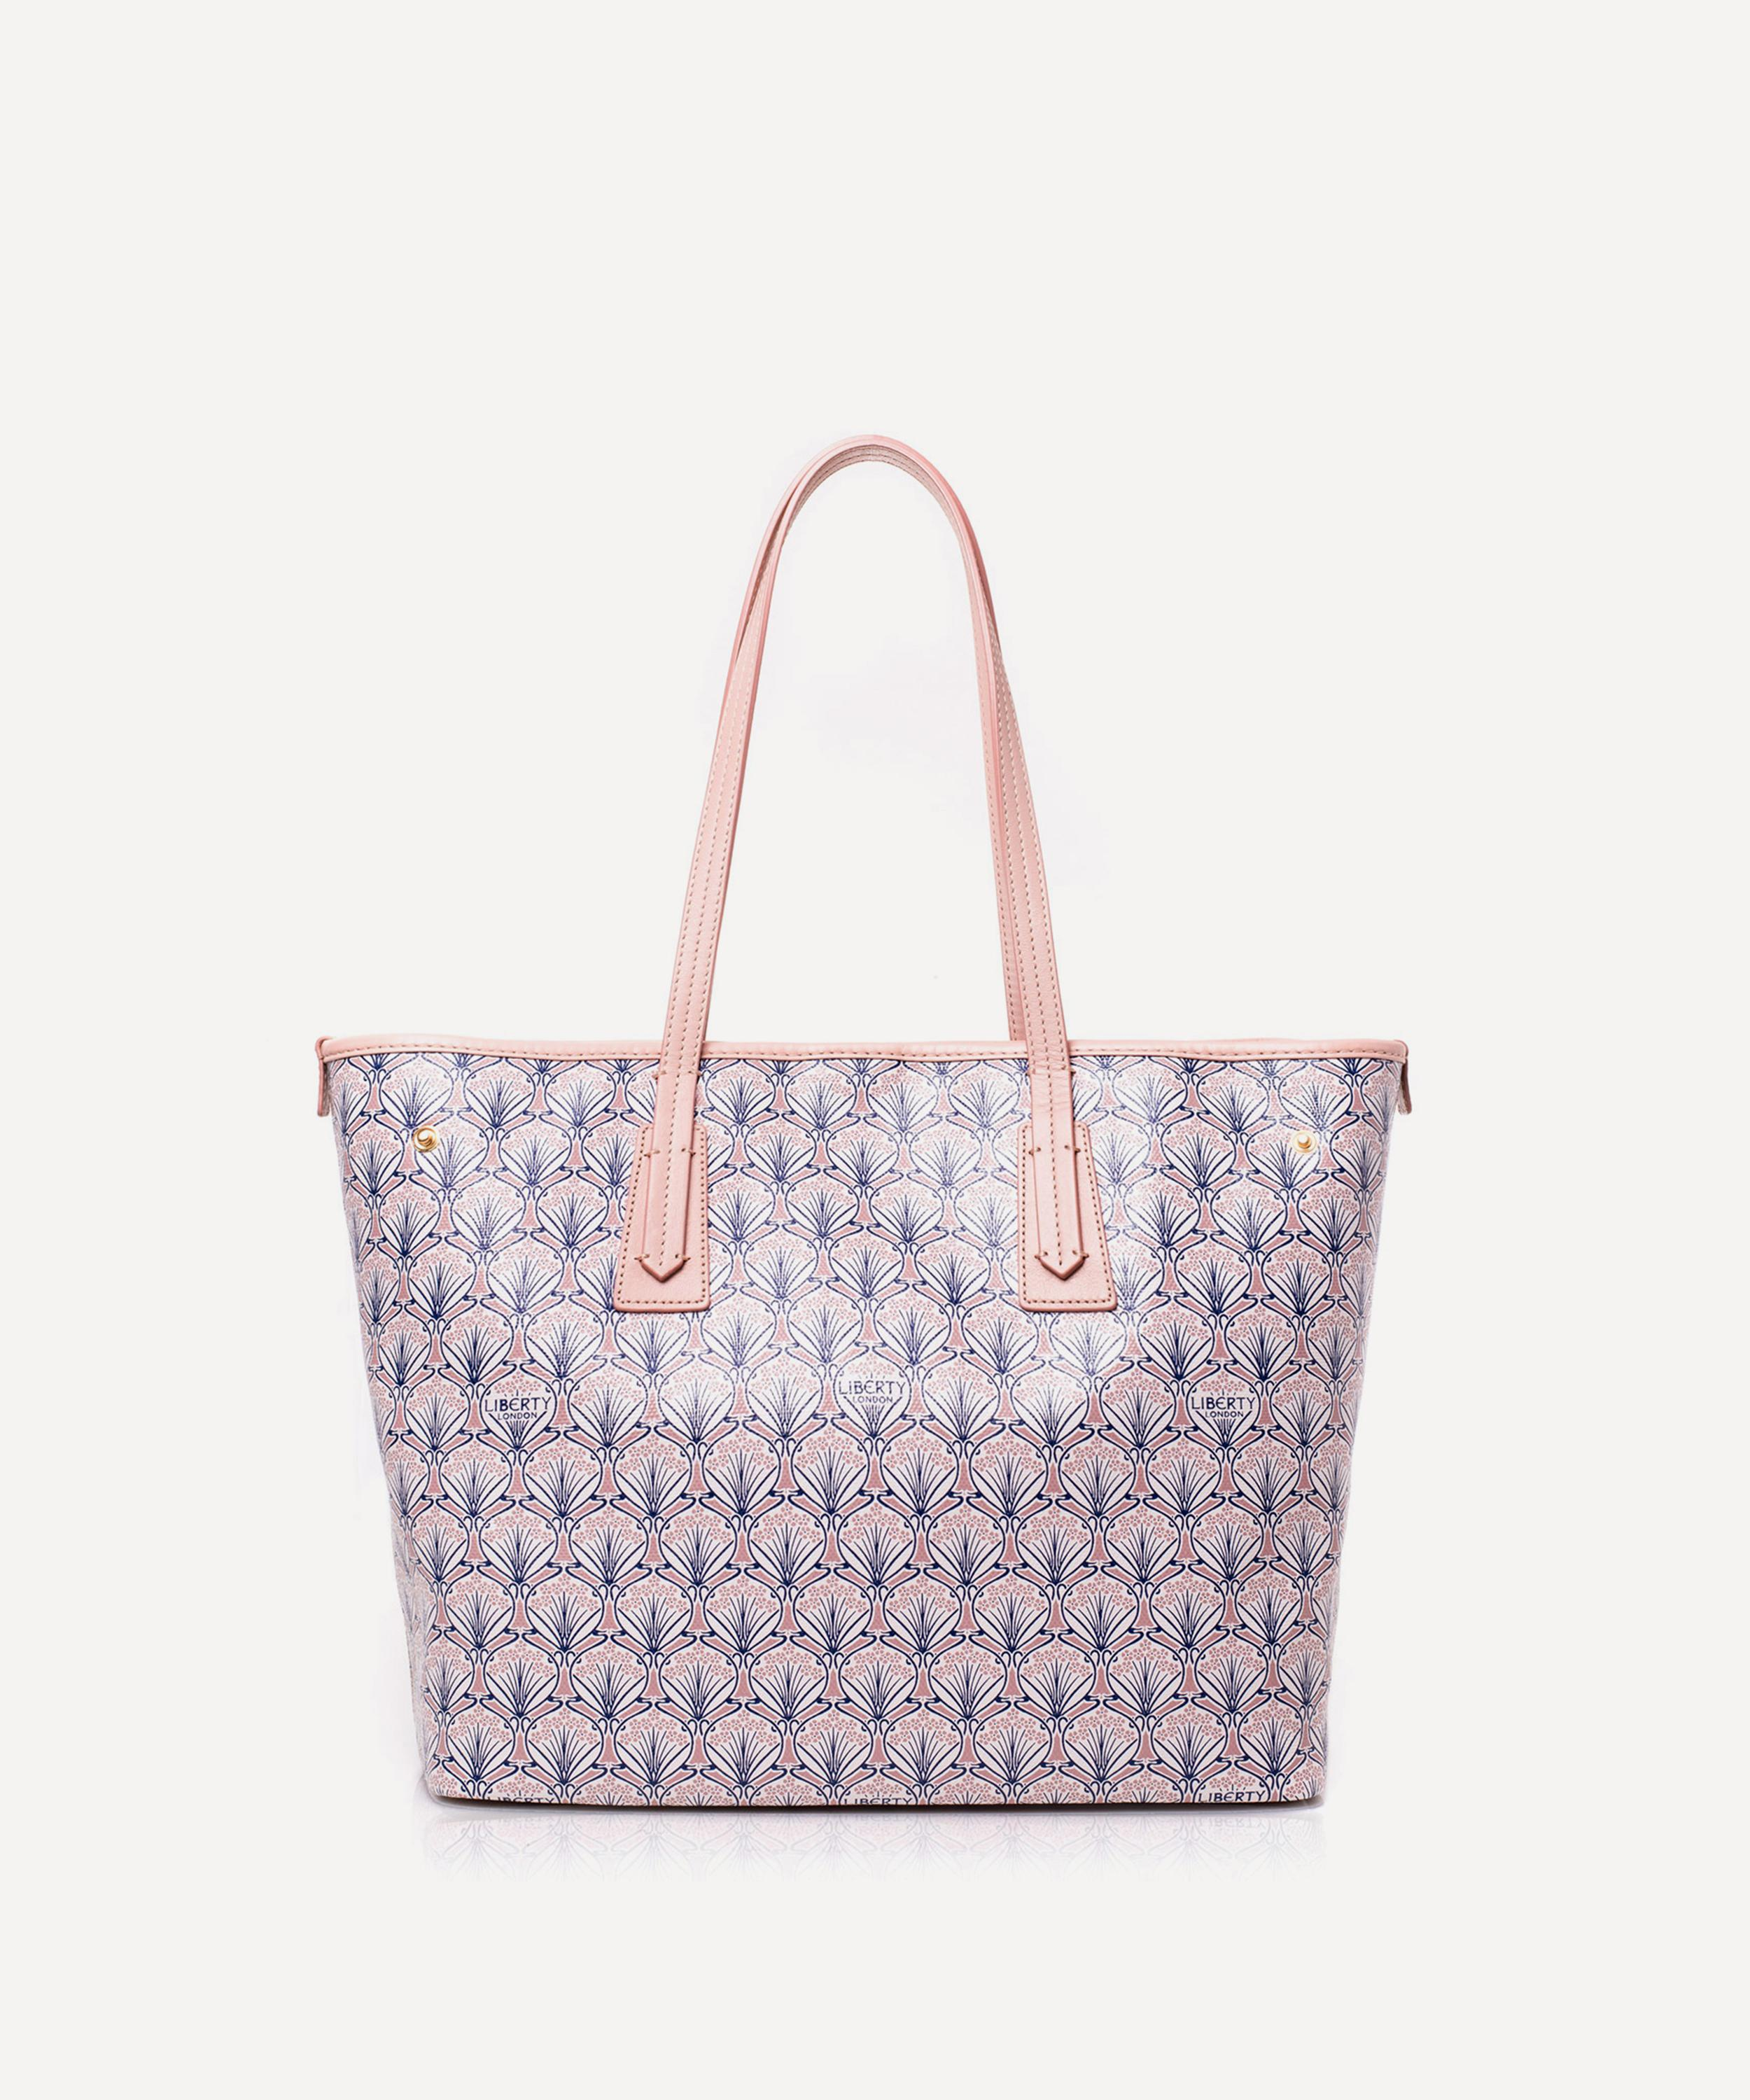 0d6703374d34f Little Marlborough Tote Bag in Iphis Canvas